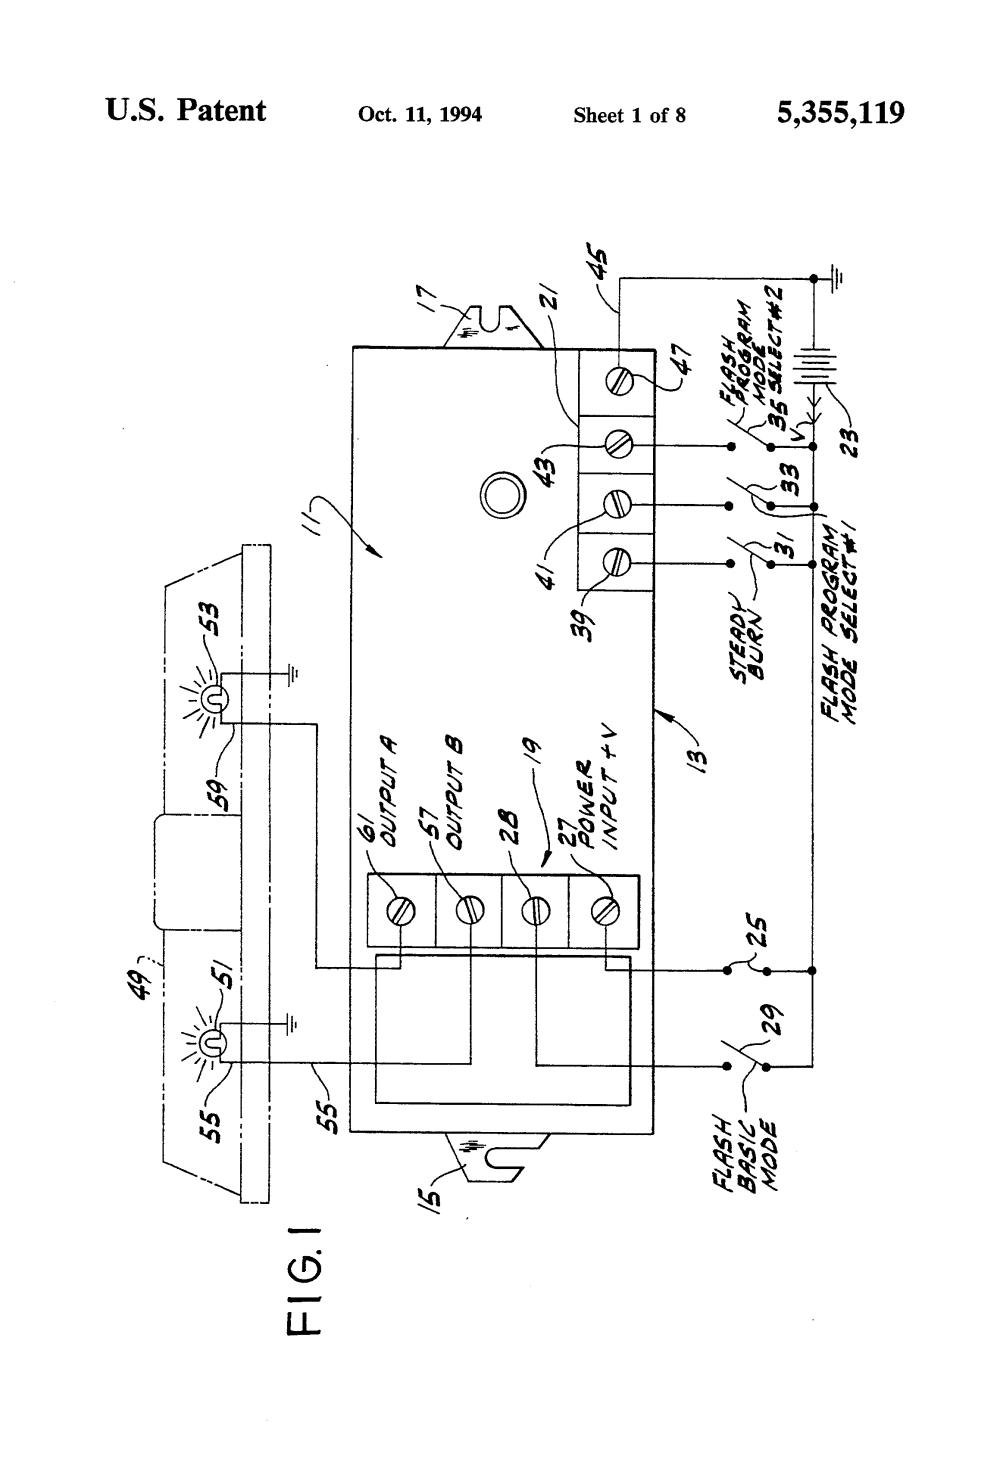 medium resolution of us5355119 1 patent us5355119 apparatus and methods for controlling a signal soundoff headlight flasher wiring diagram